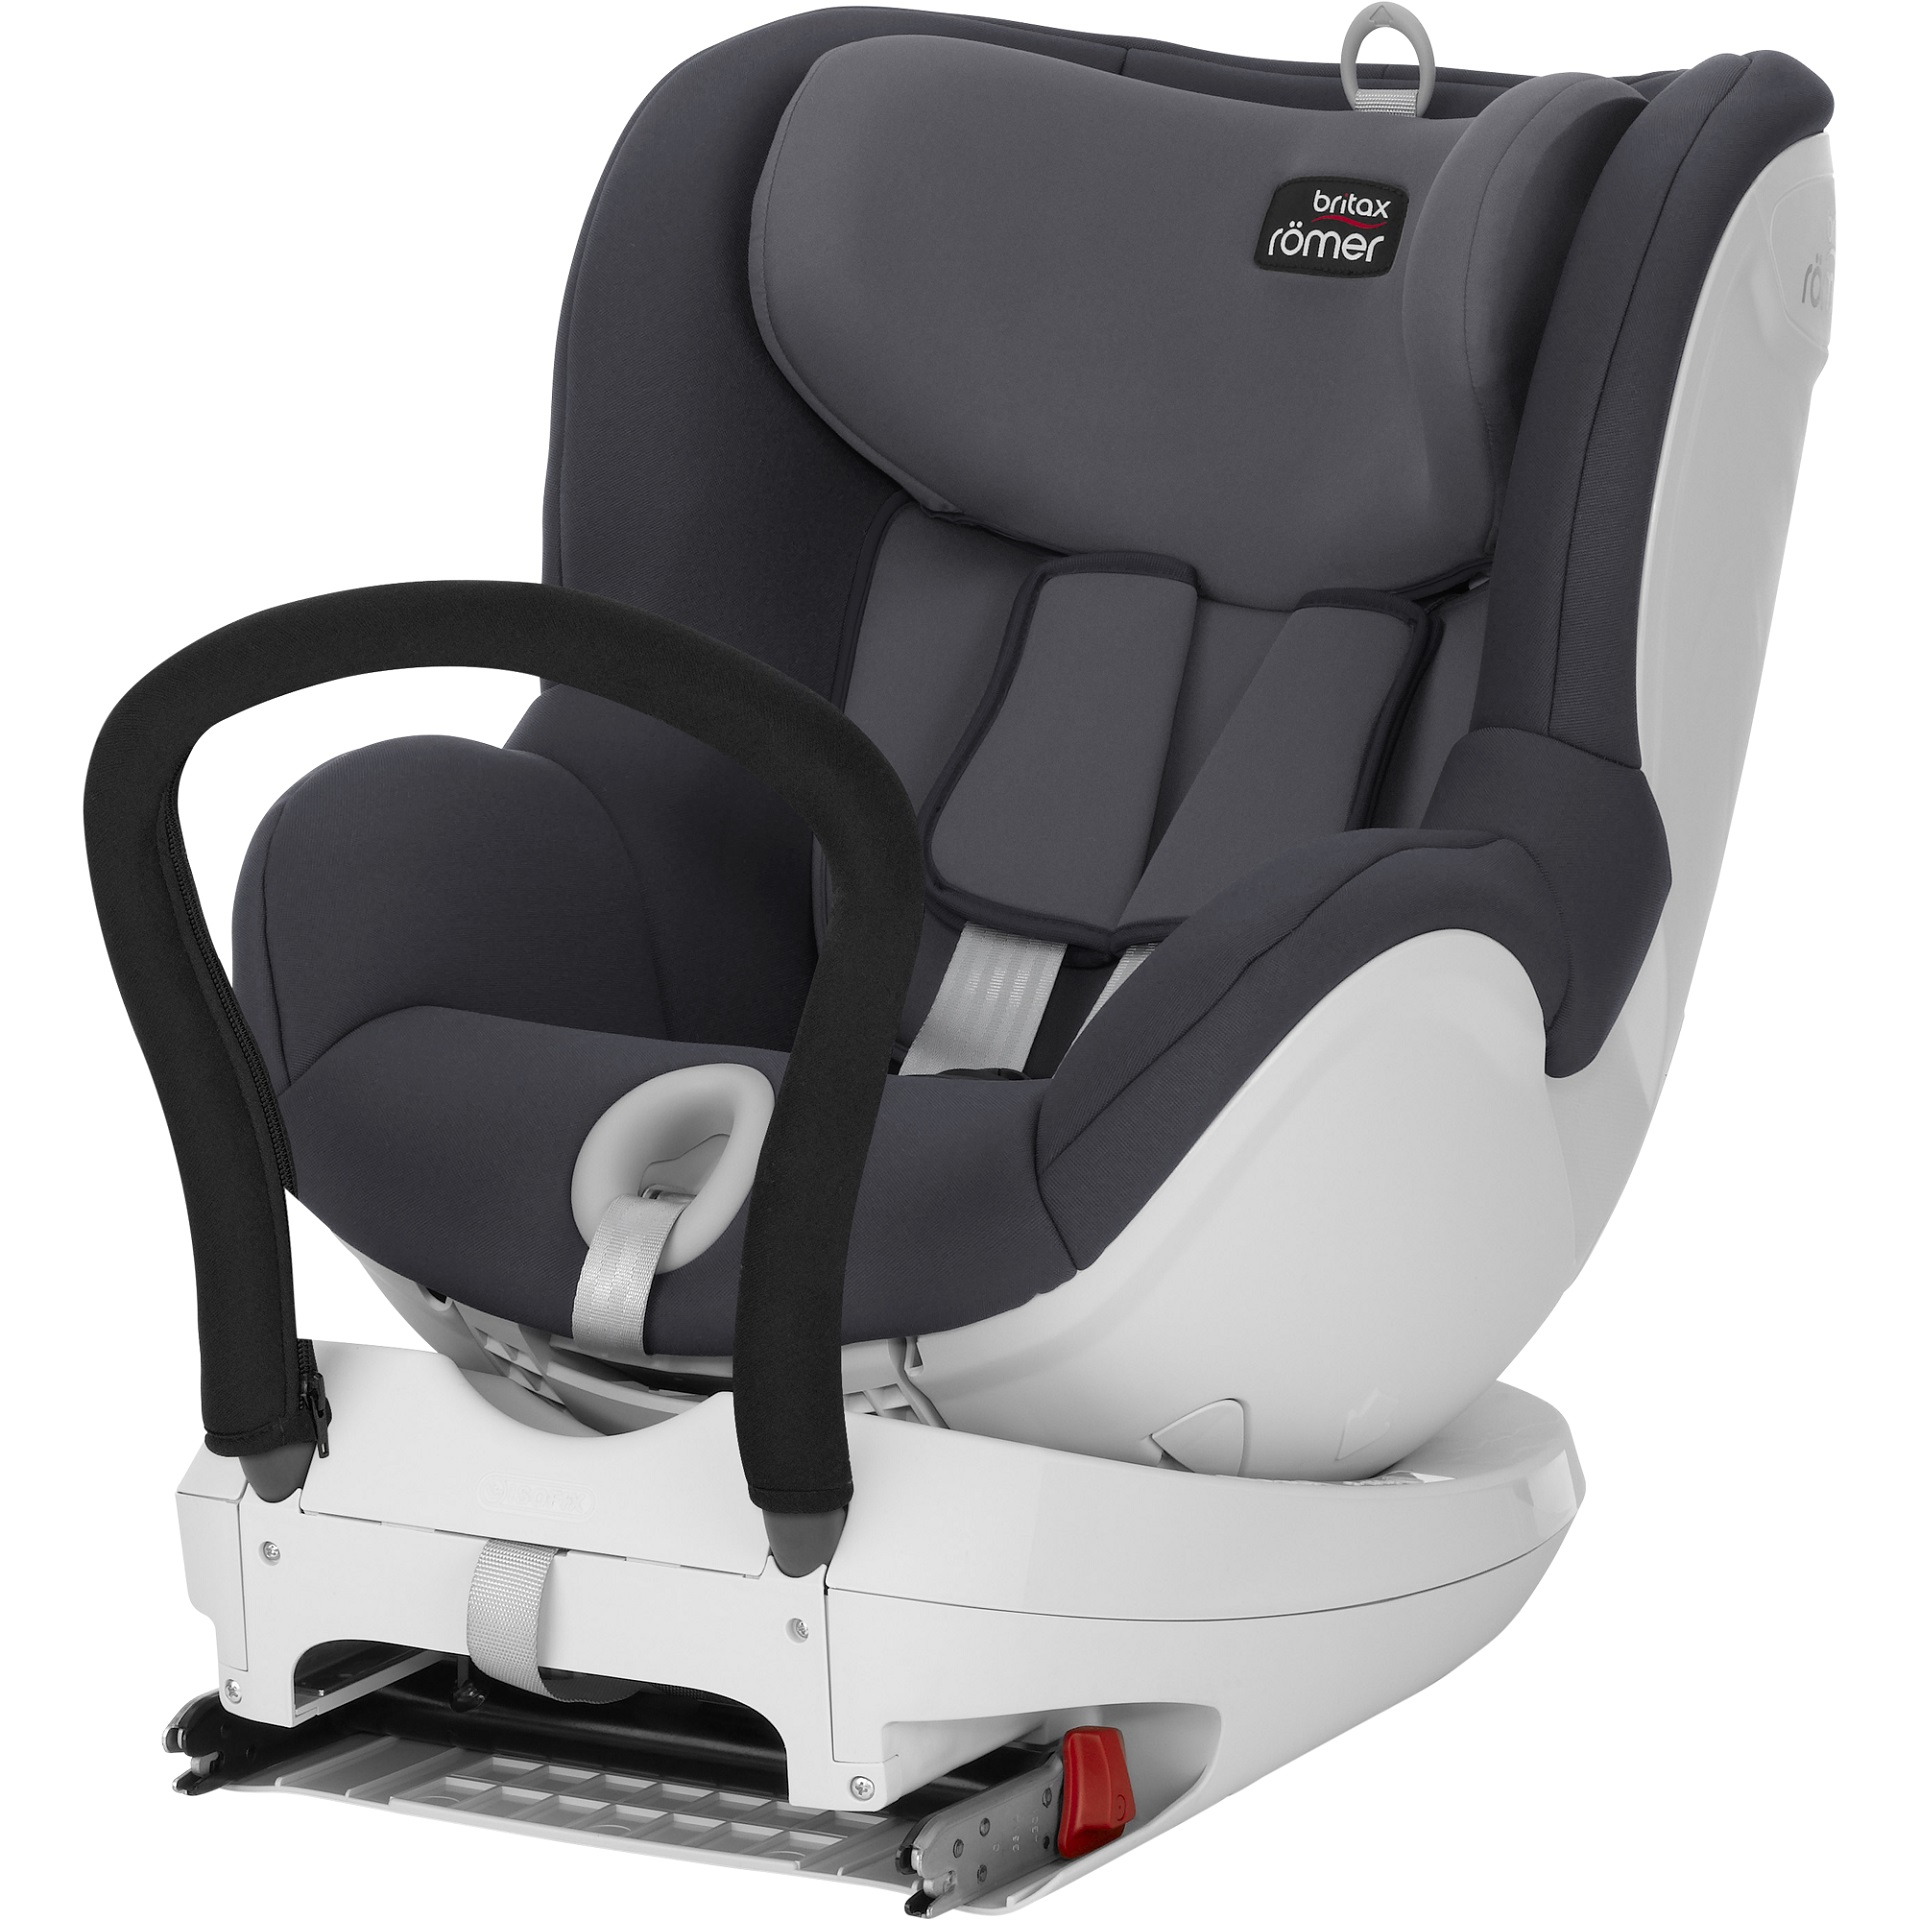 britax r mer car seat dualfix buy at kidsroom car seats isofix child car seats. Black Bedroom Furniture Sets. Home Design Ideas